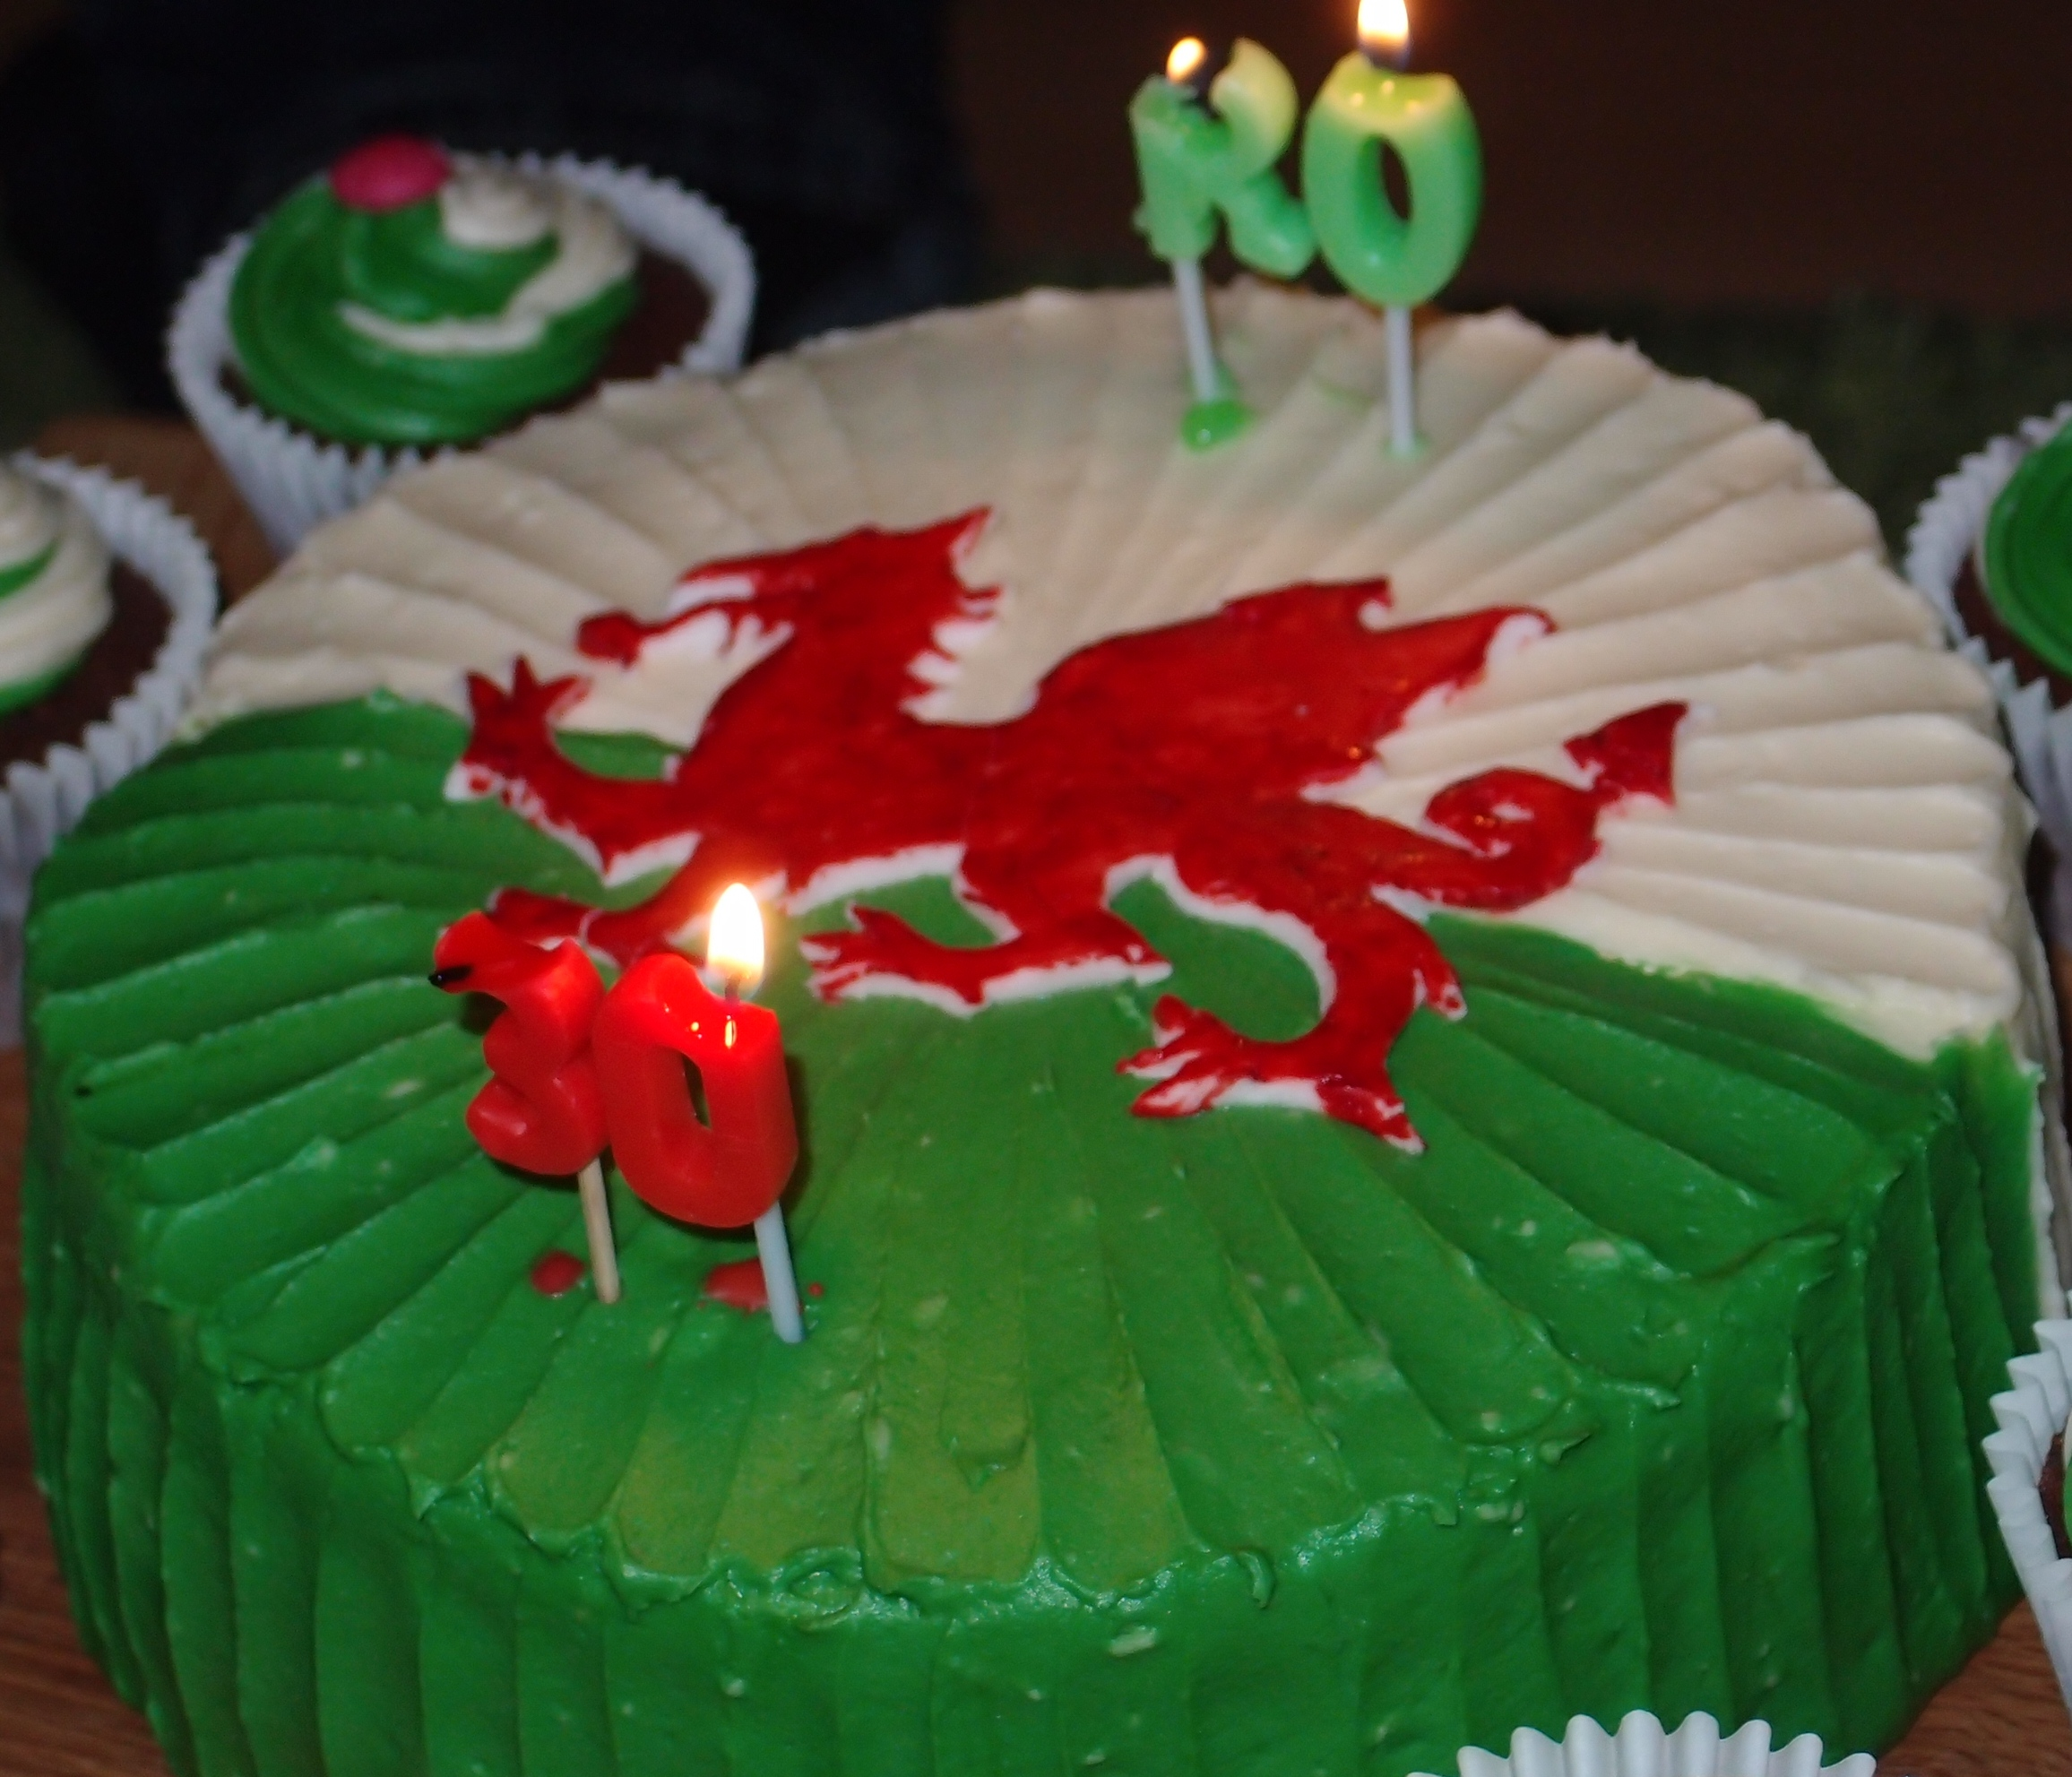 Welsh Birthday Cake Gloverly Cupcakes